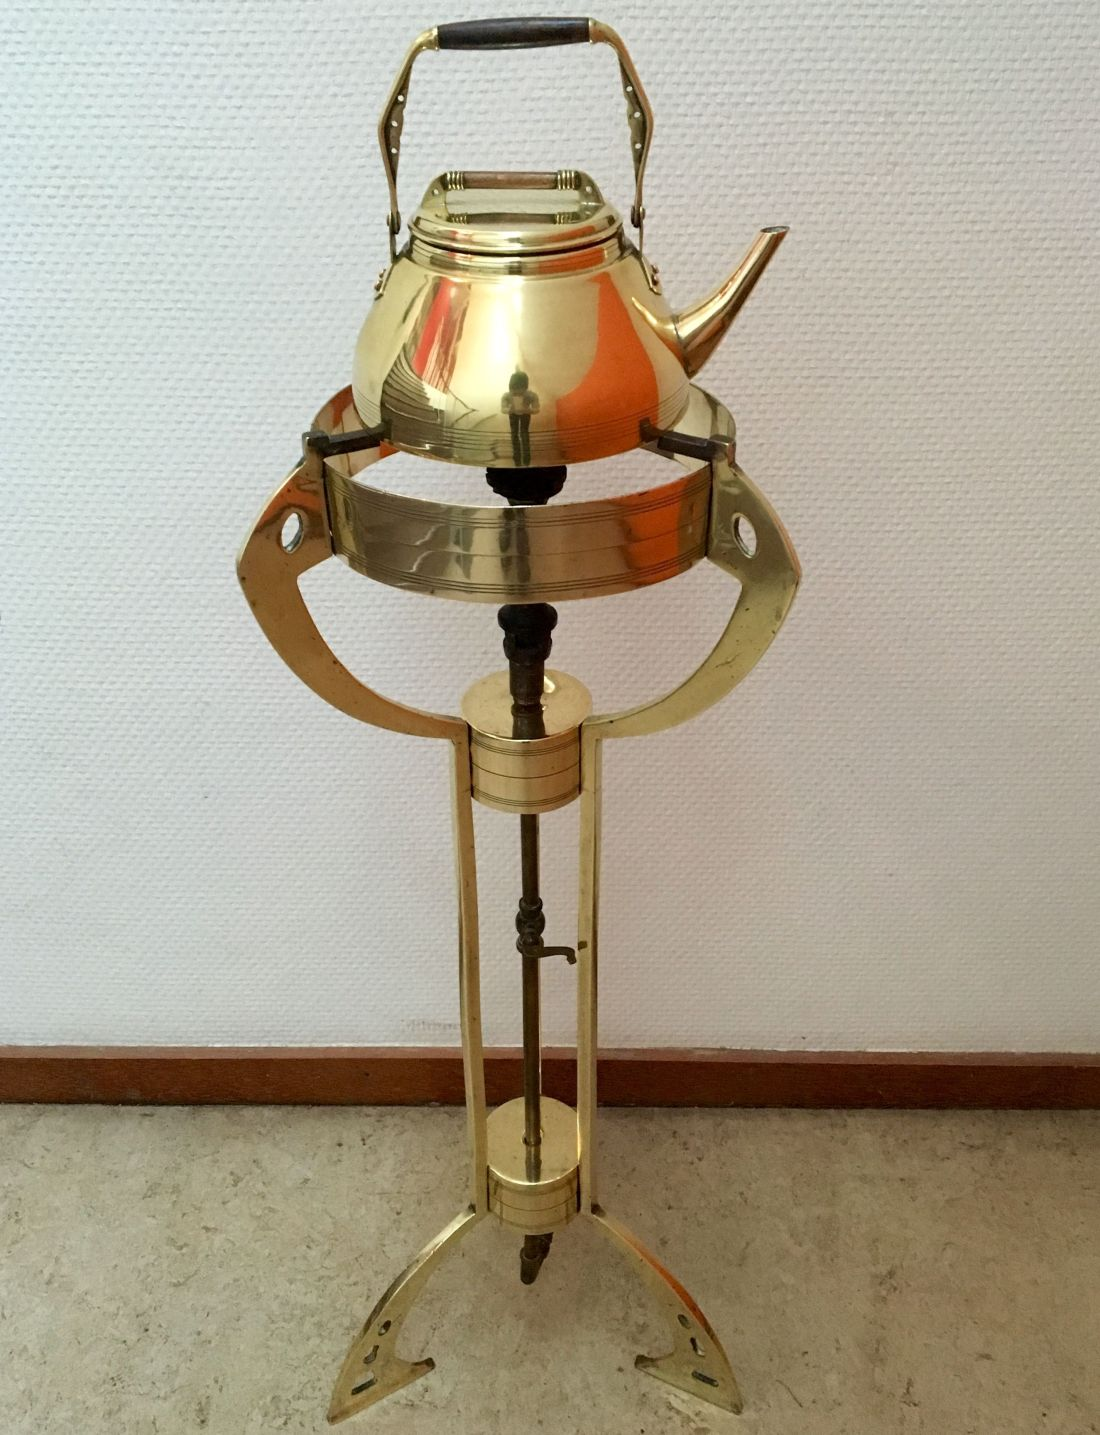 Kettle with floor burner. ca. 1908-1910.